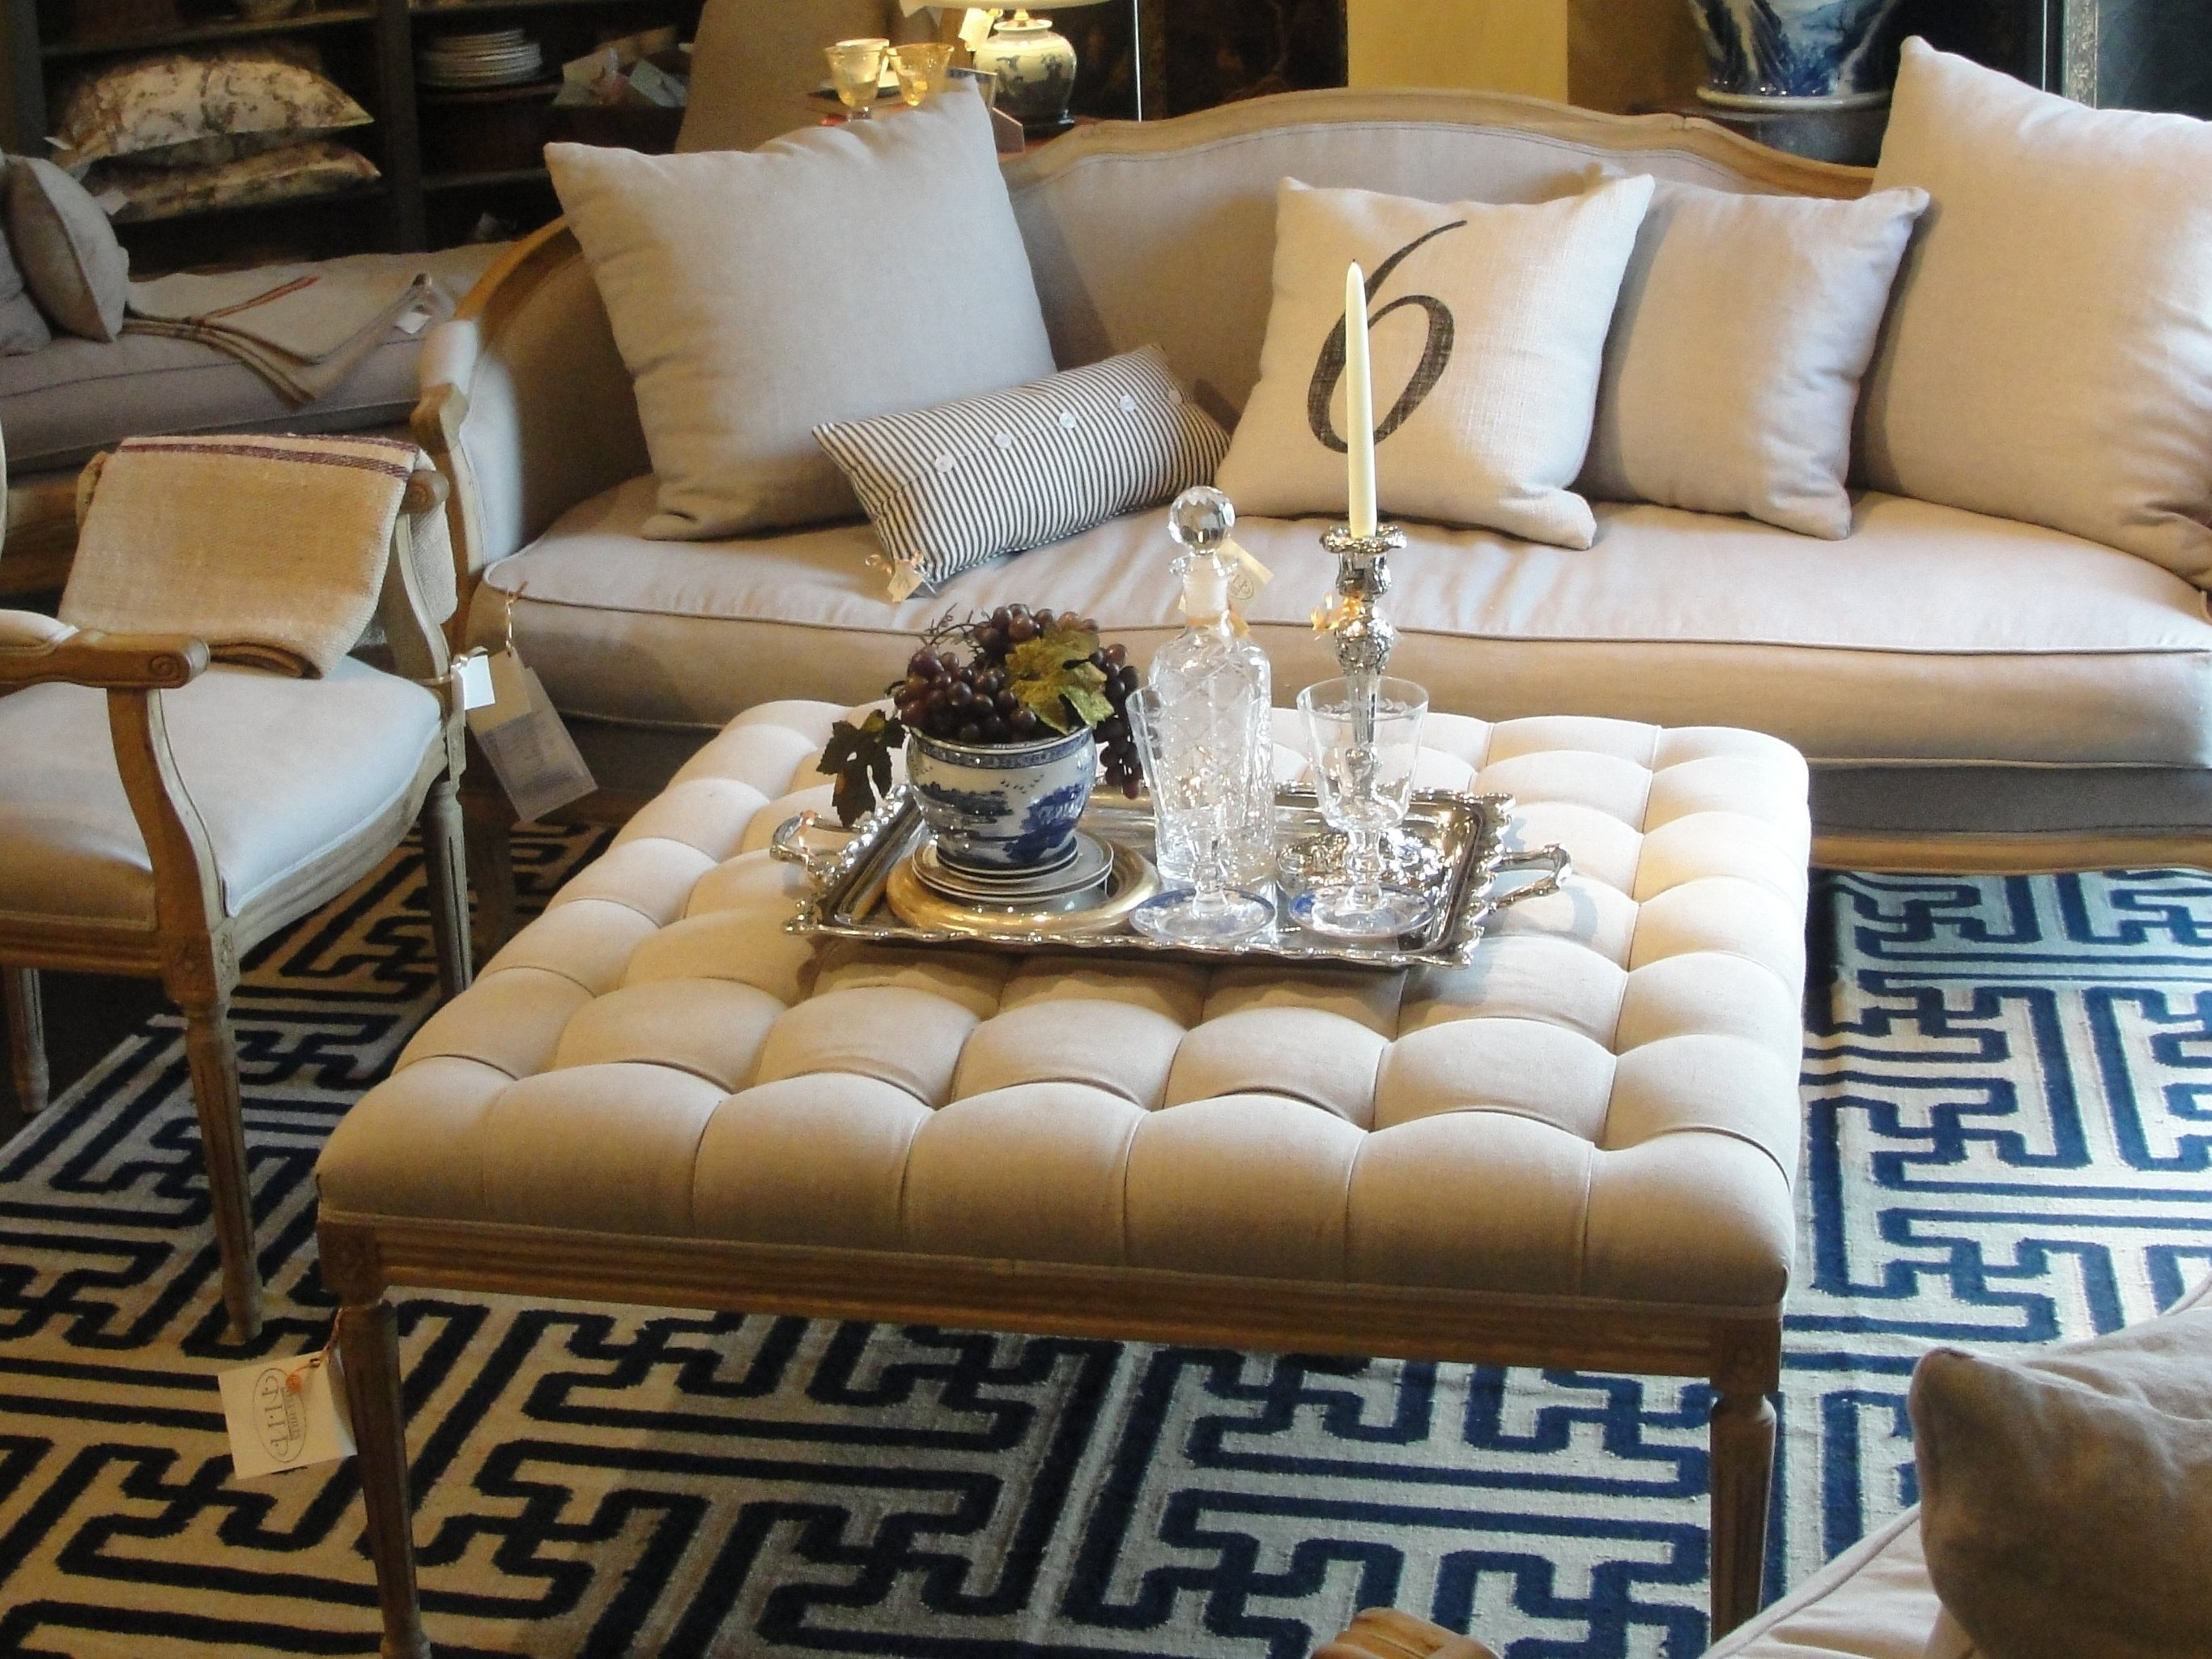 Large Ottoman Coffee Table | Square Ottomans Coffee Tables | Tan Leather Ottoman Coffee Table